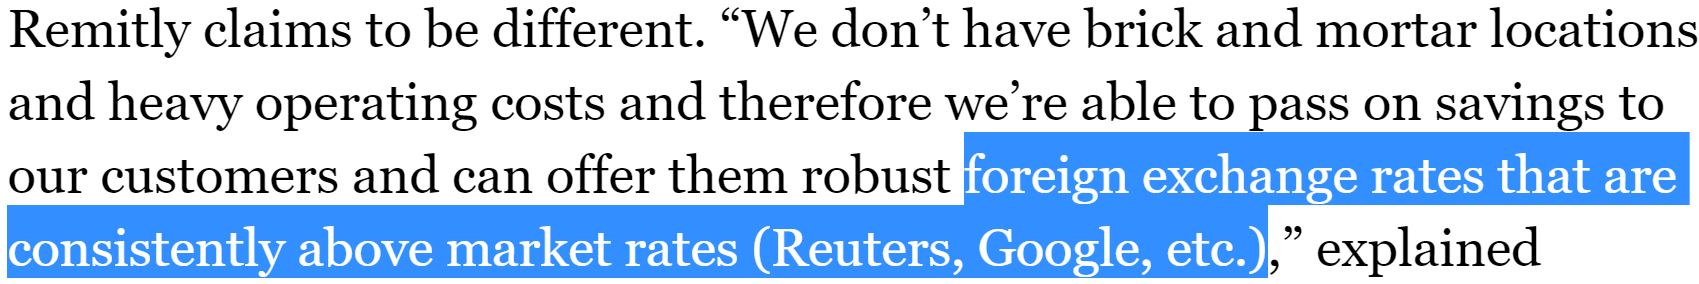 Remity Quote Above FX rates Jan 14 Forbes article